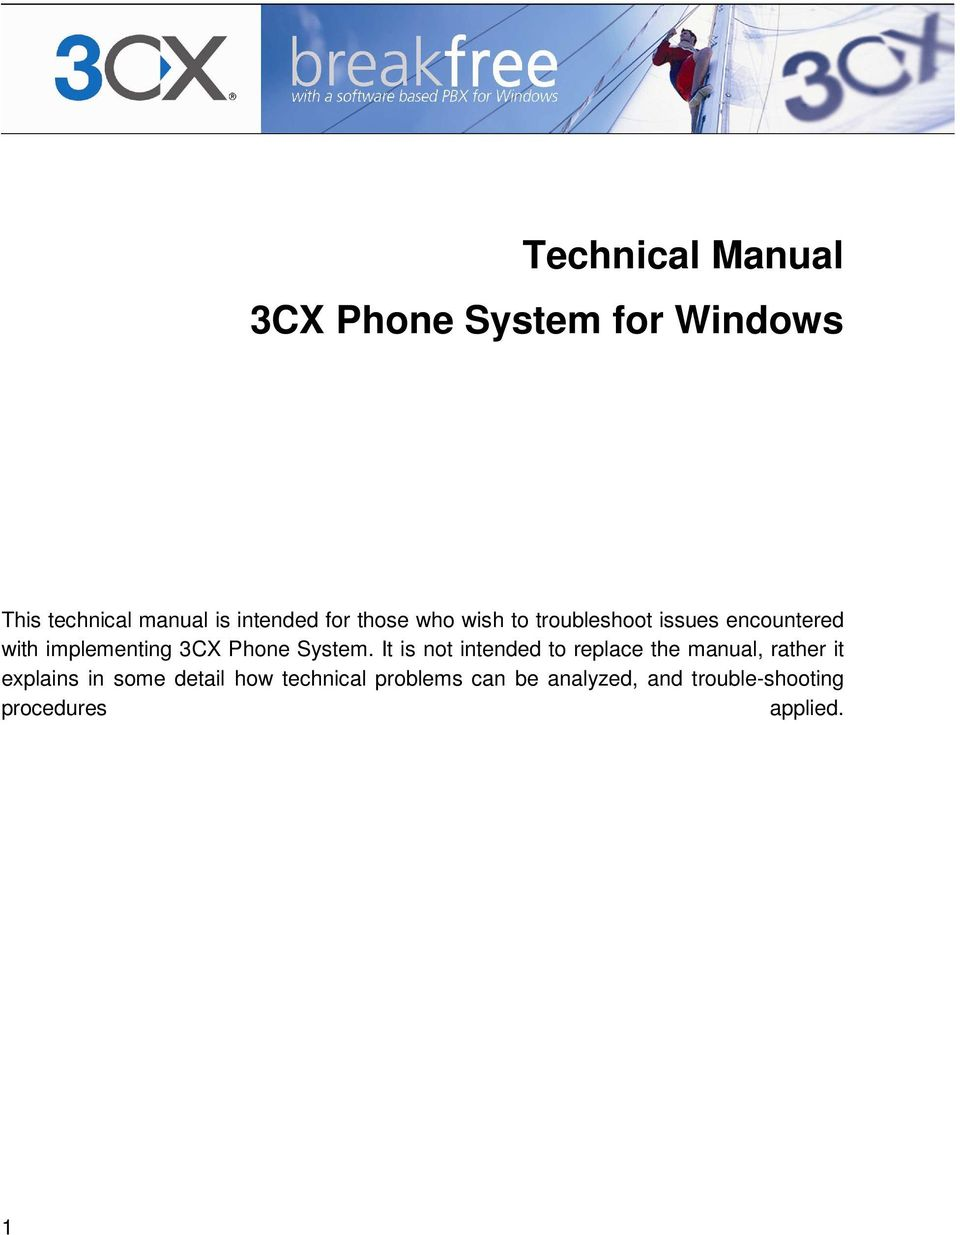 Technical Manual 3CX Phone System for Windows - PDF